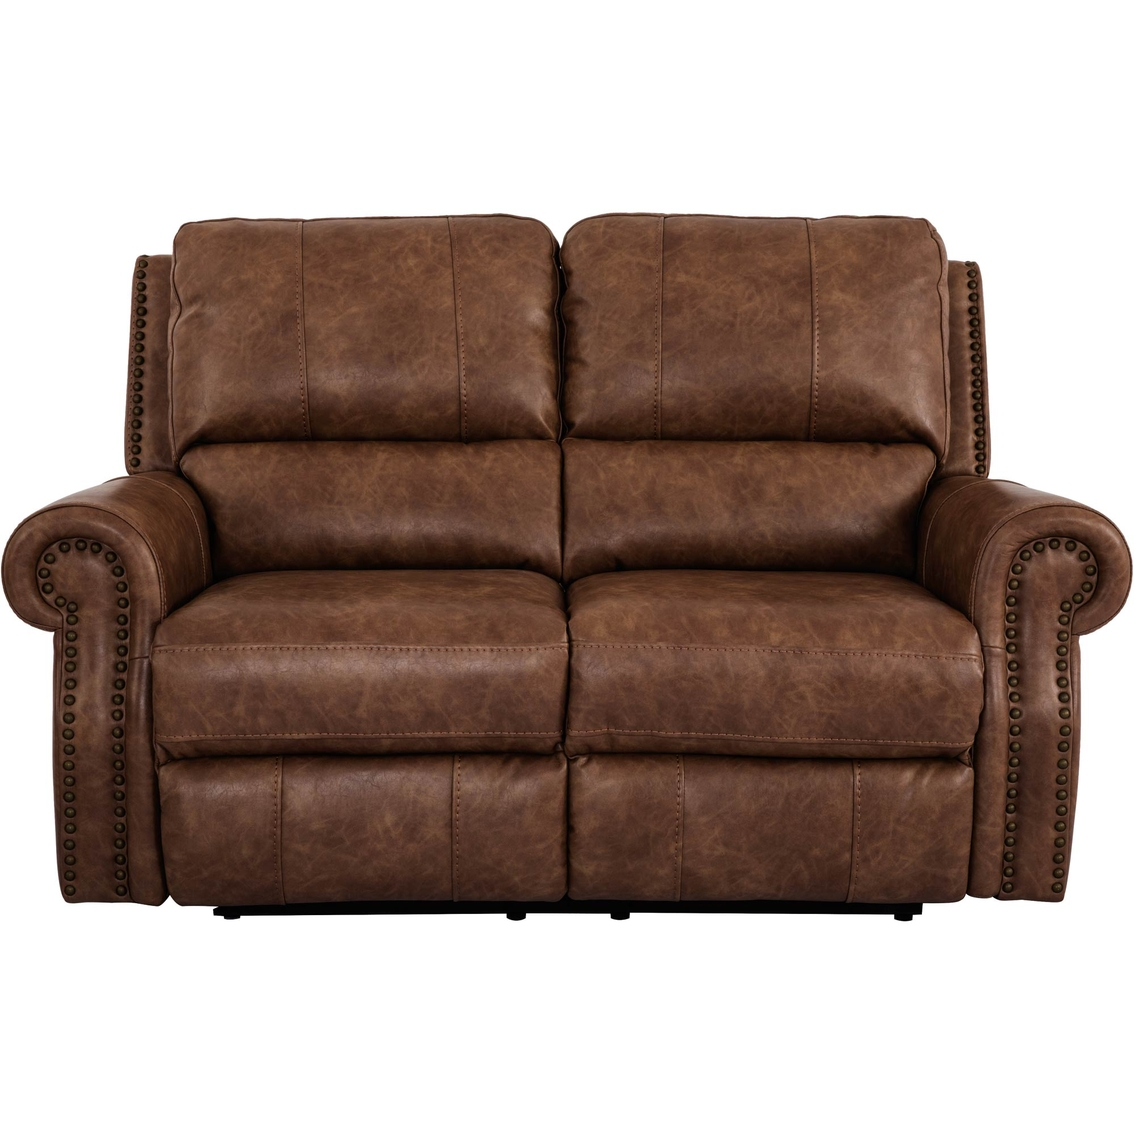 Xpress motion by bassett norwood loveseat with power for Furniture xpress